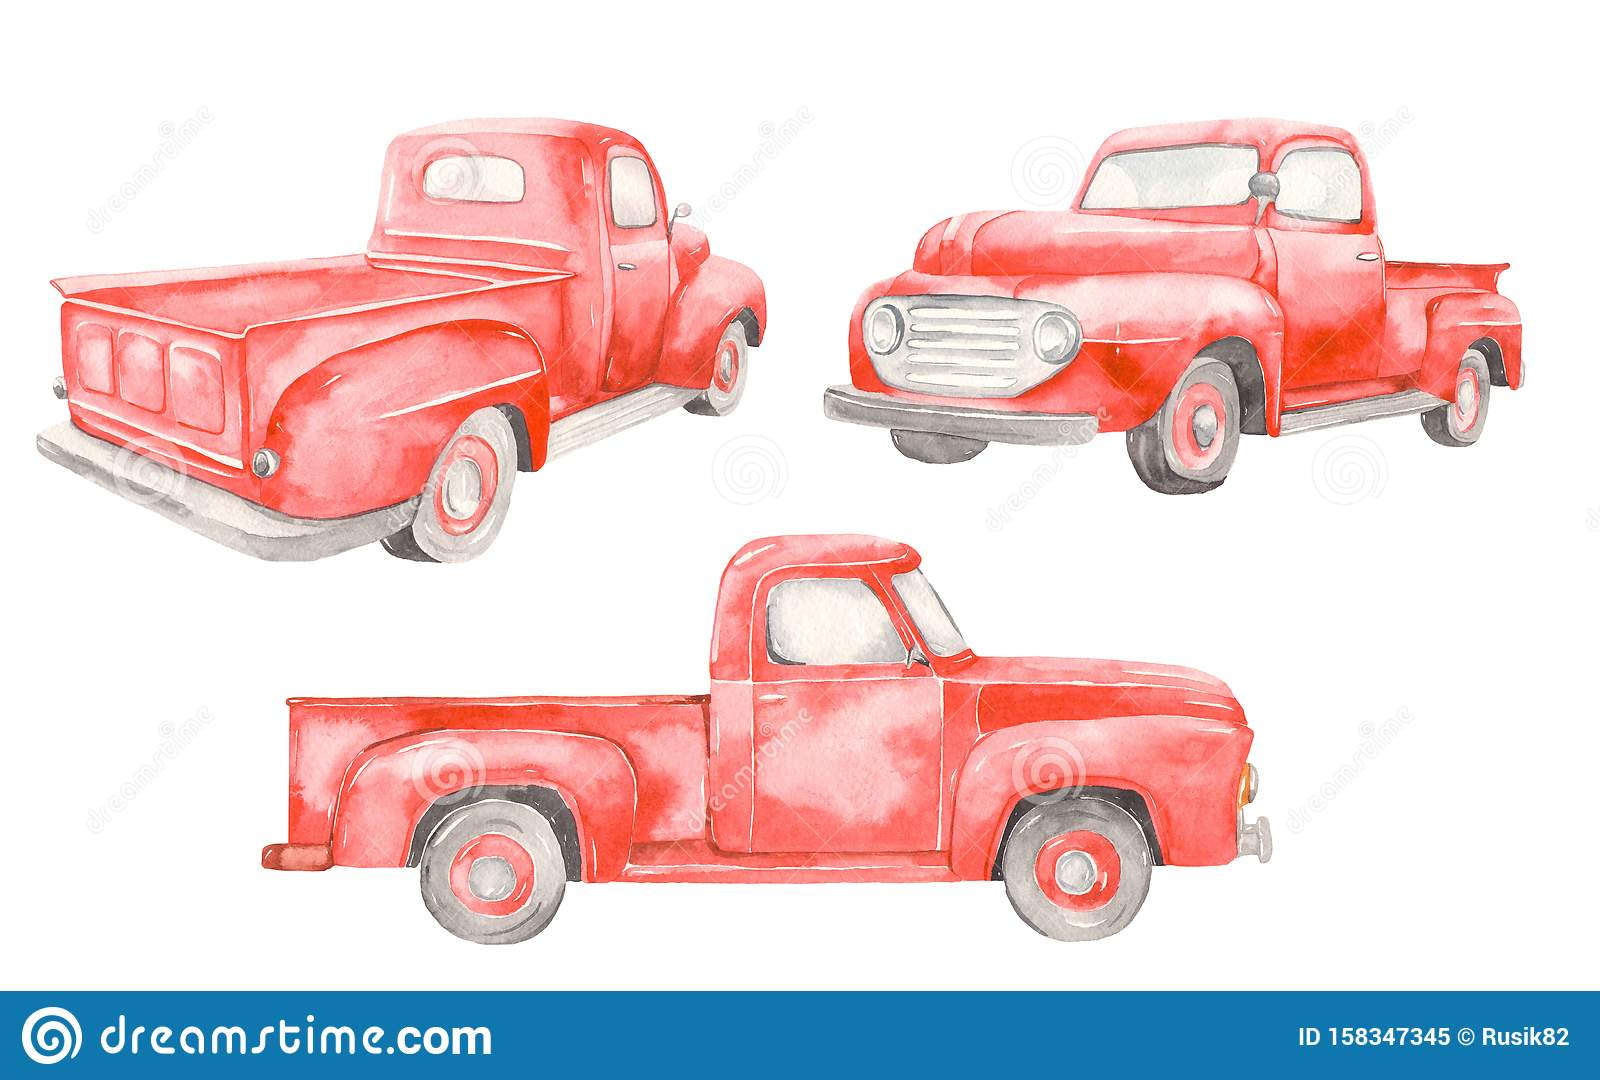 Watercolor Red Old Car Pickup Front View Side Back On White Background Stock Illustration Illustration Of Rear Christmas 158347345